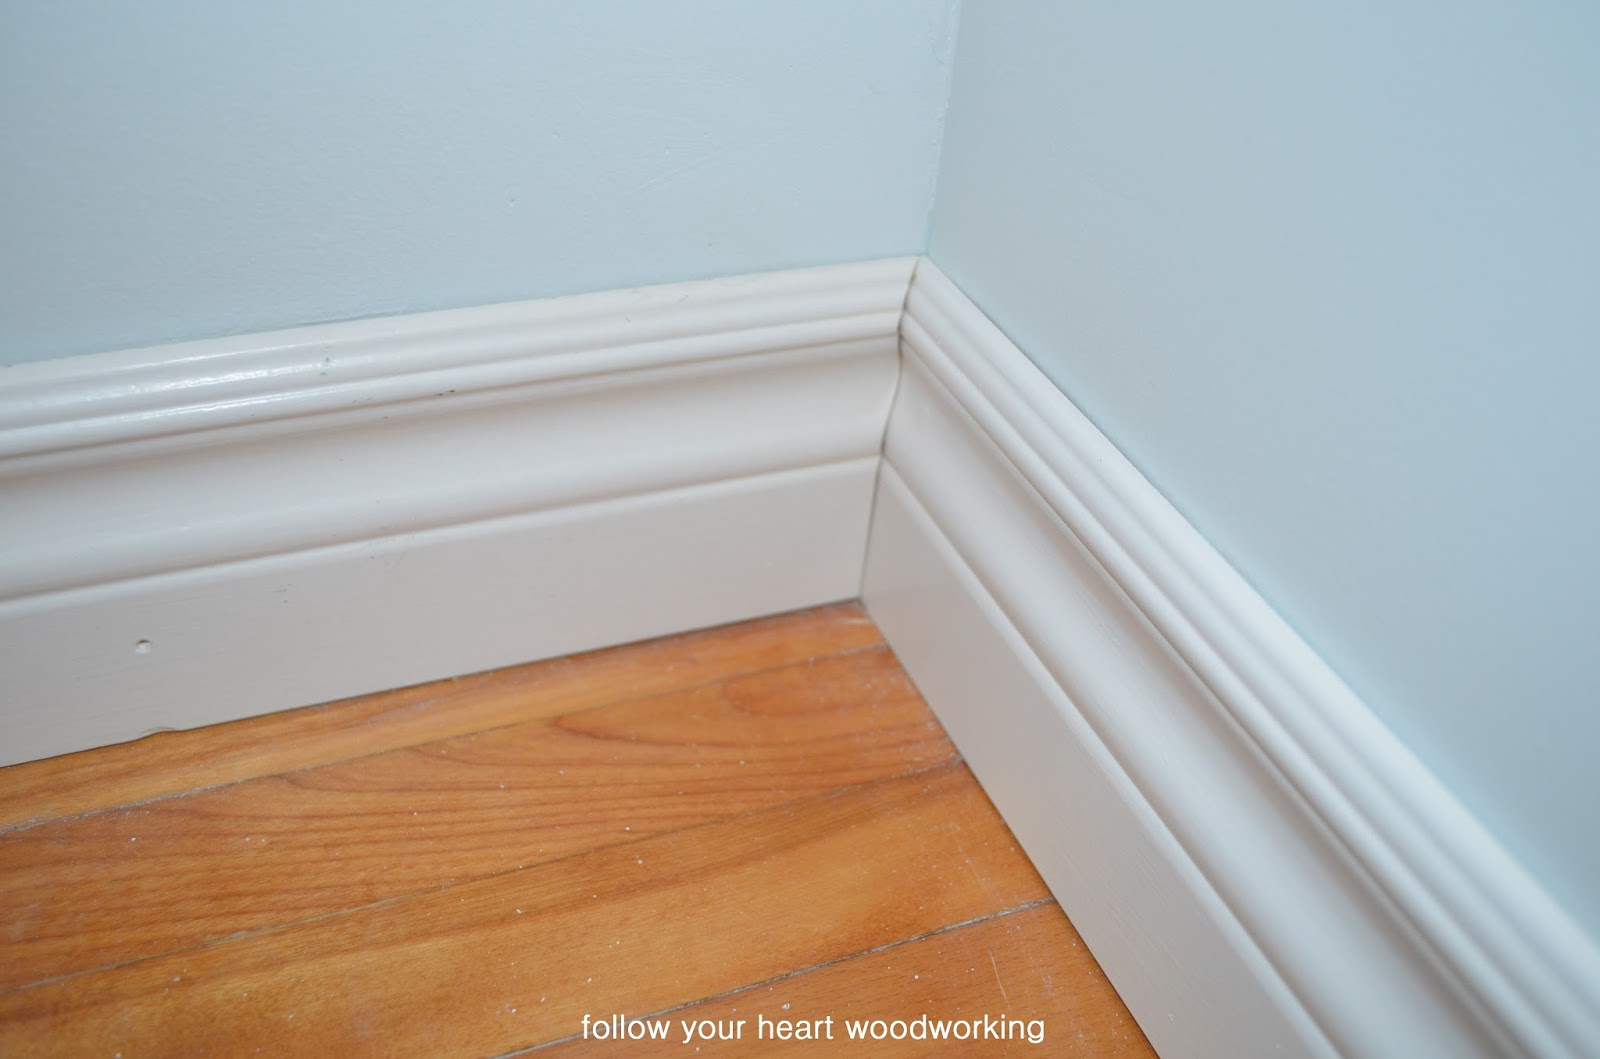 how to cut baseboards without coping saw